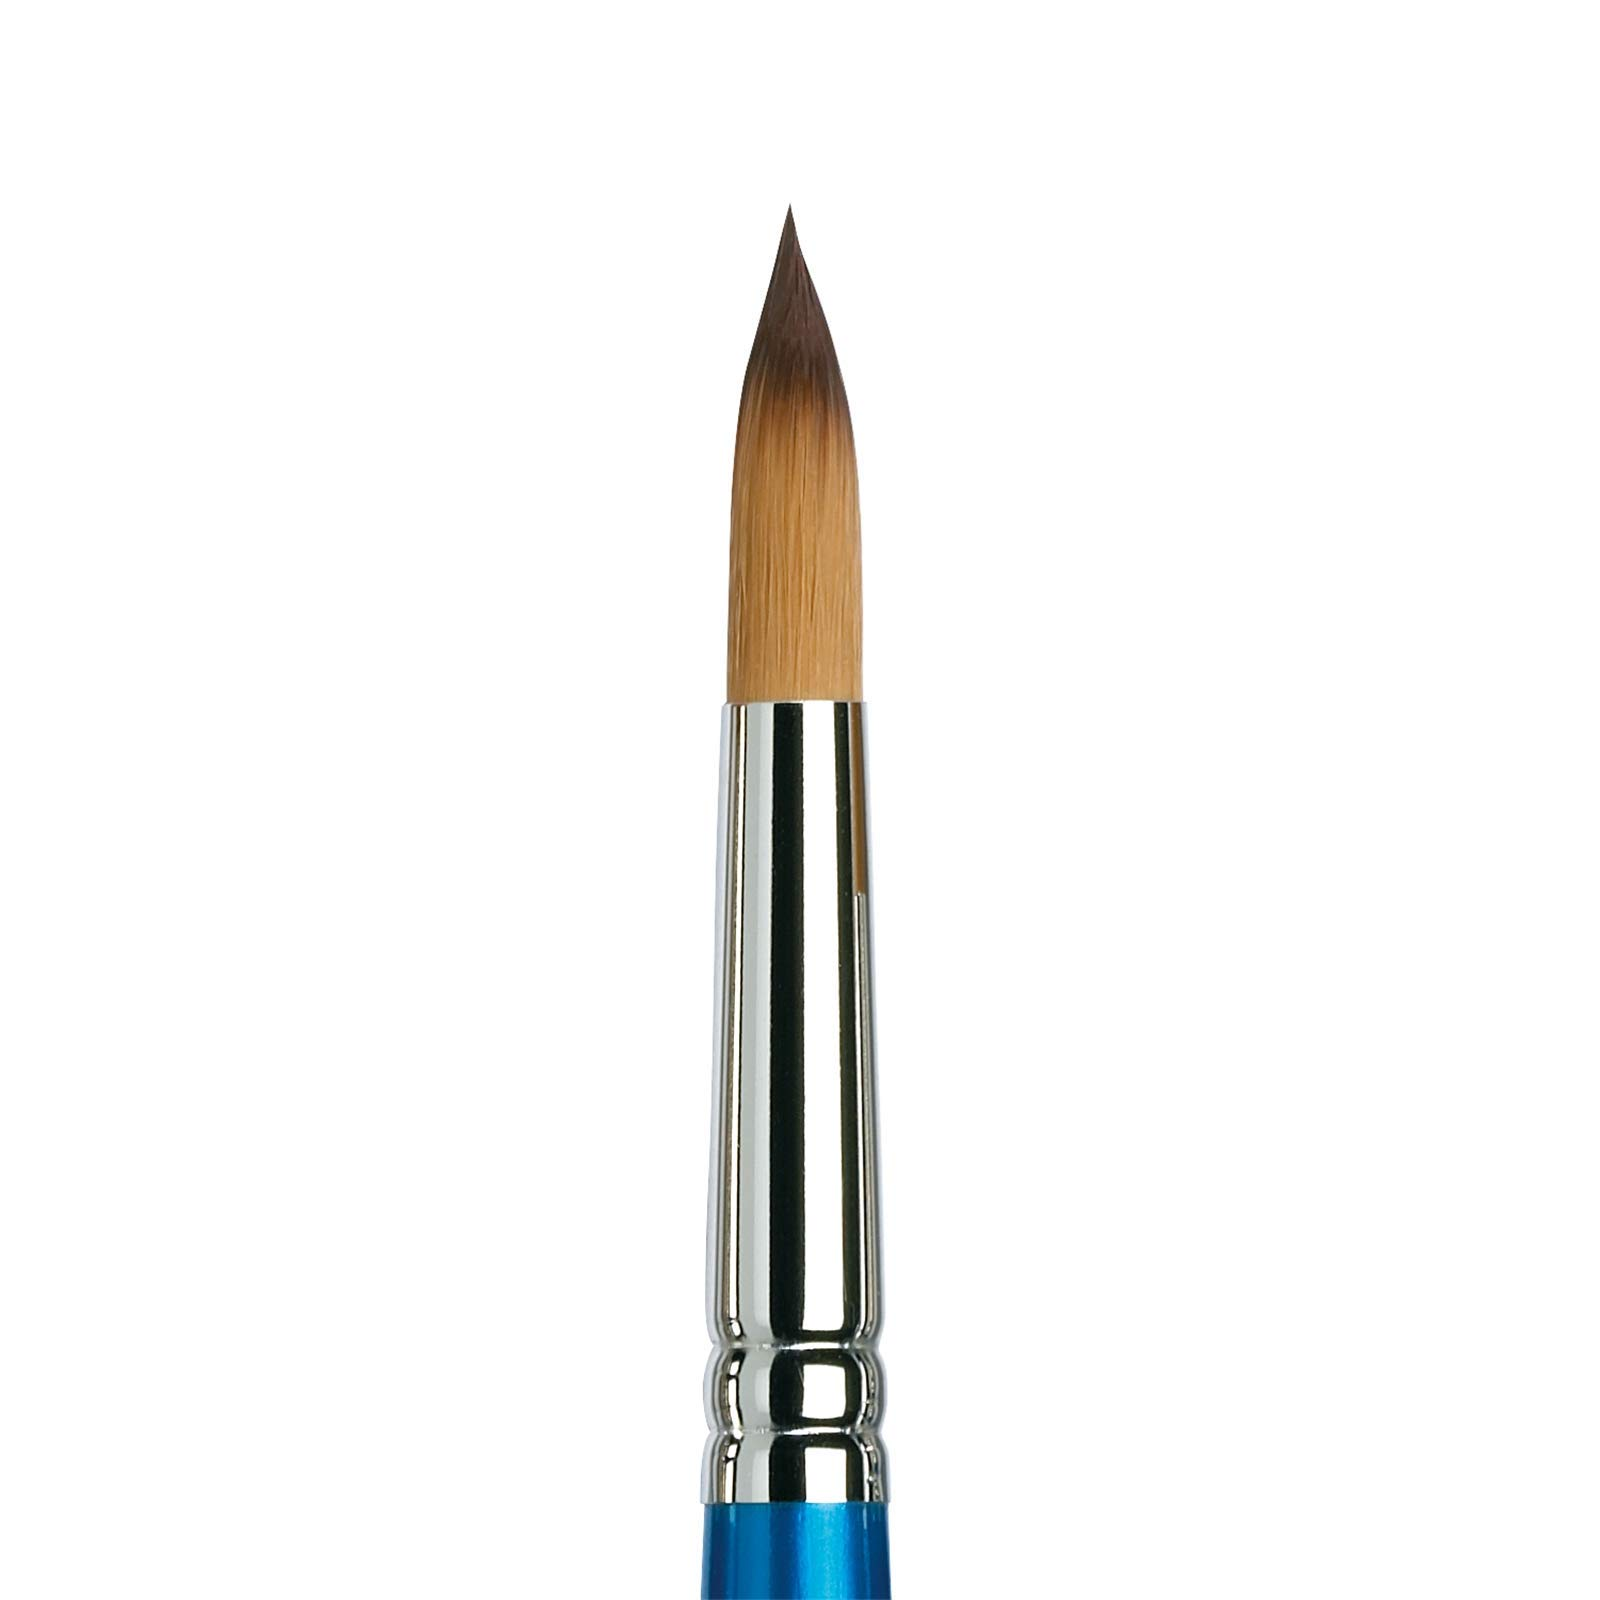 Winsor & Newton Cotman Water Colour Series 111 Short Handle Synthetic Brush - Round #14 by Winsor & Newton